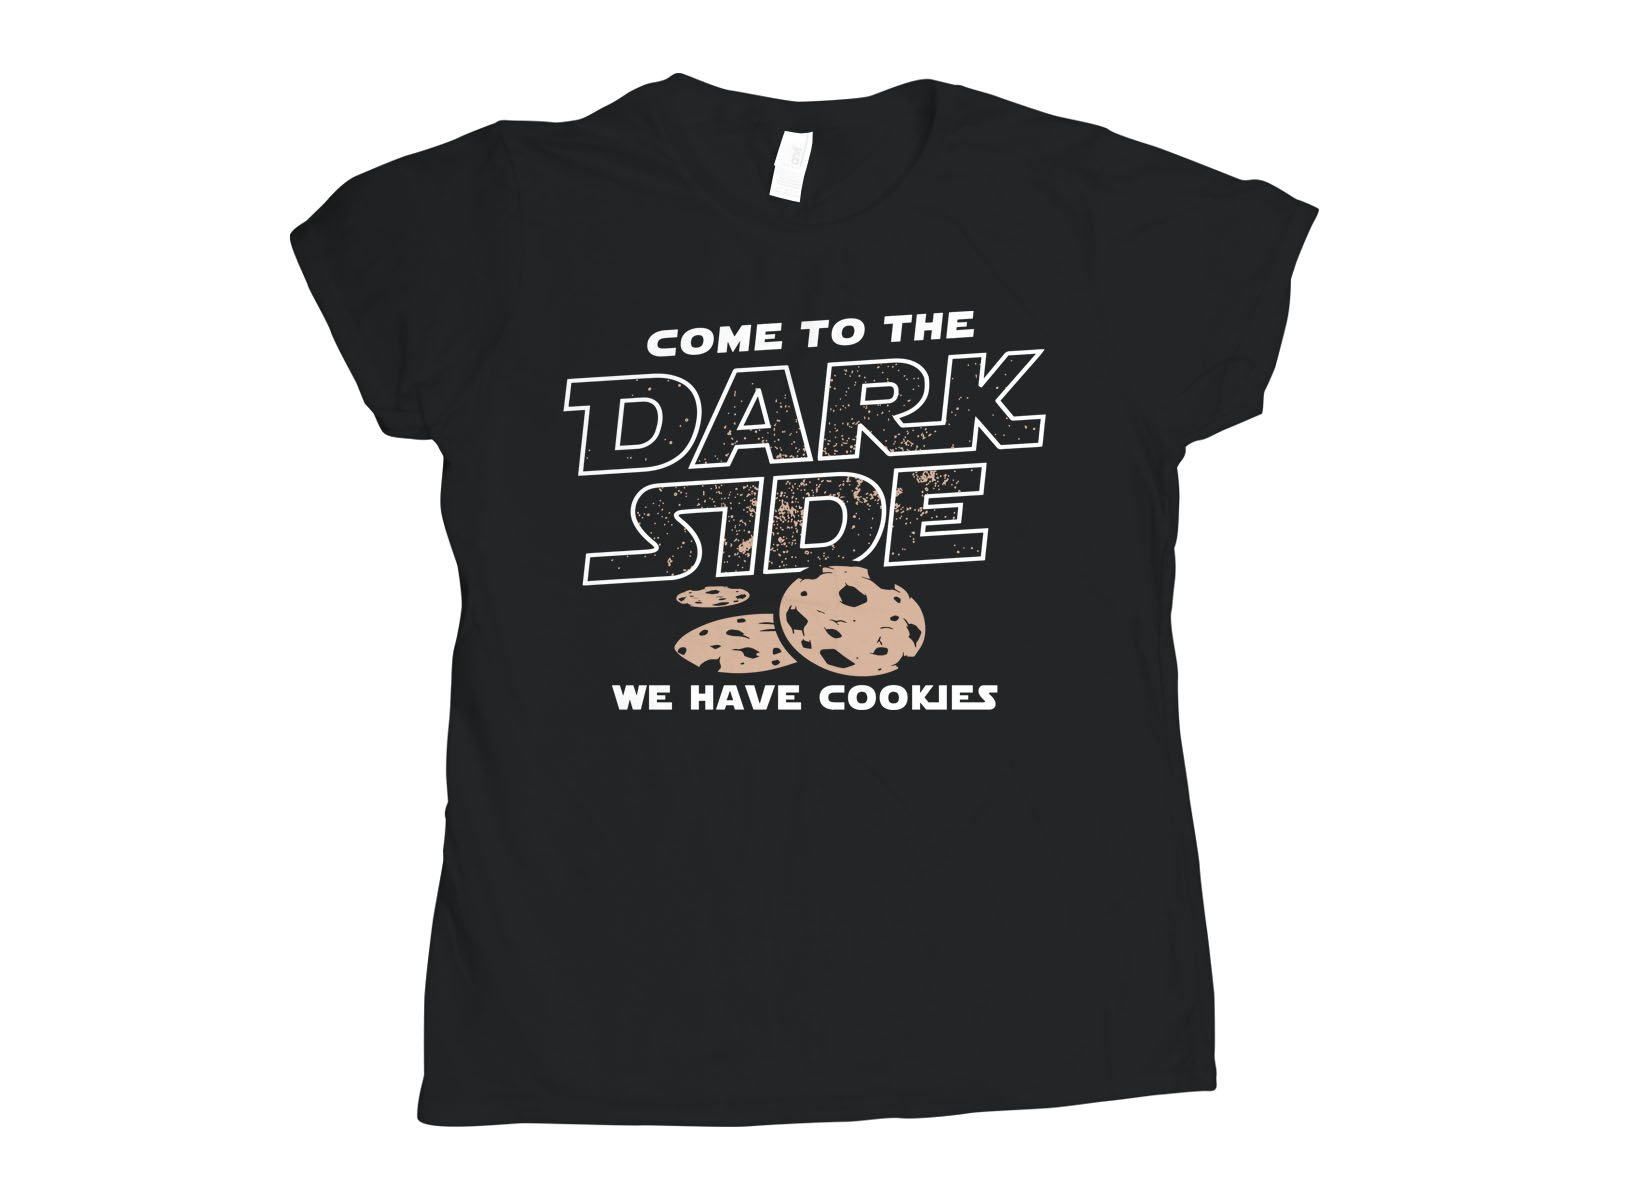 Come To The Dark Side, We Have Cookies on Womens T-Shirt